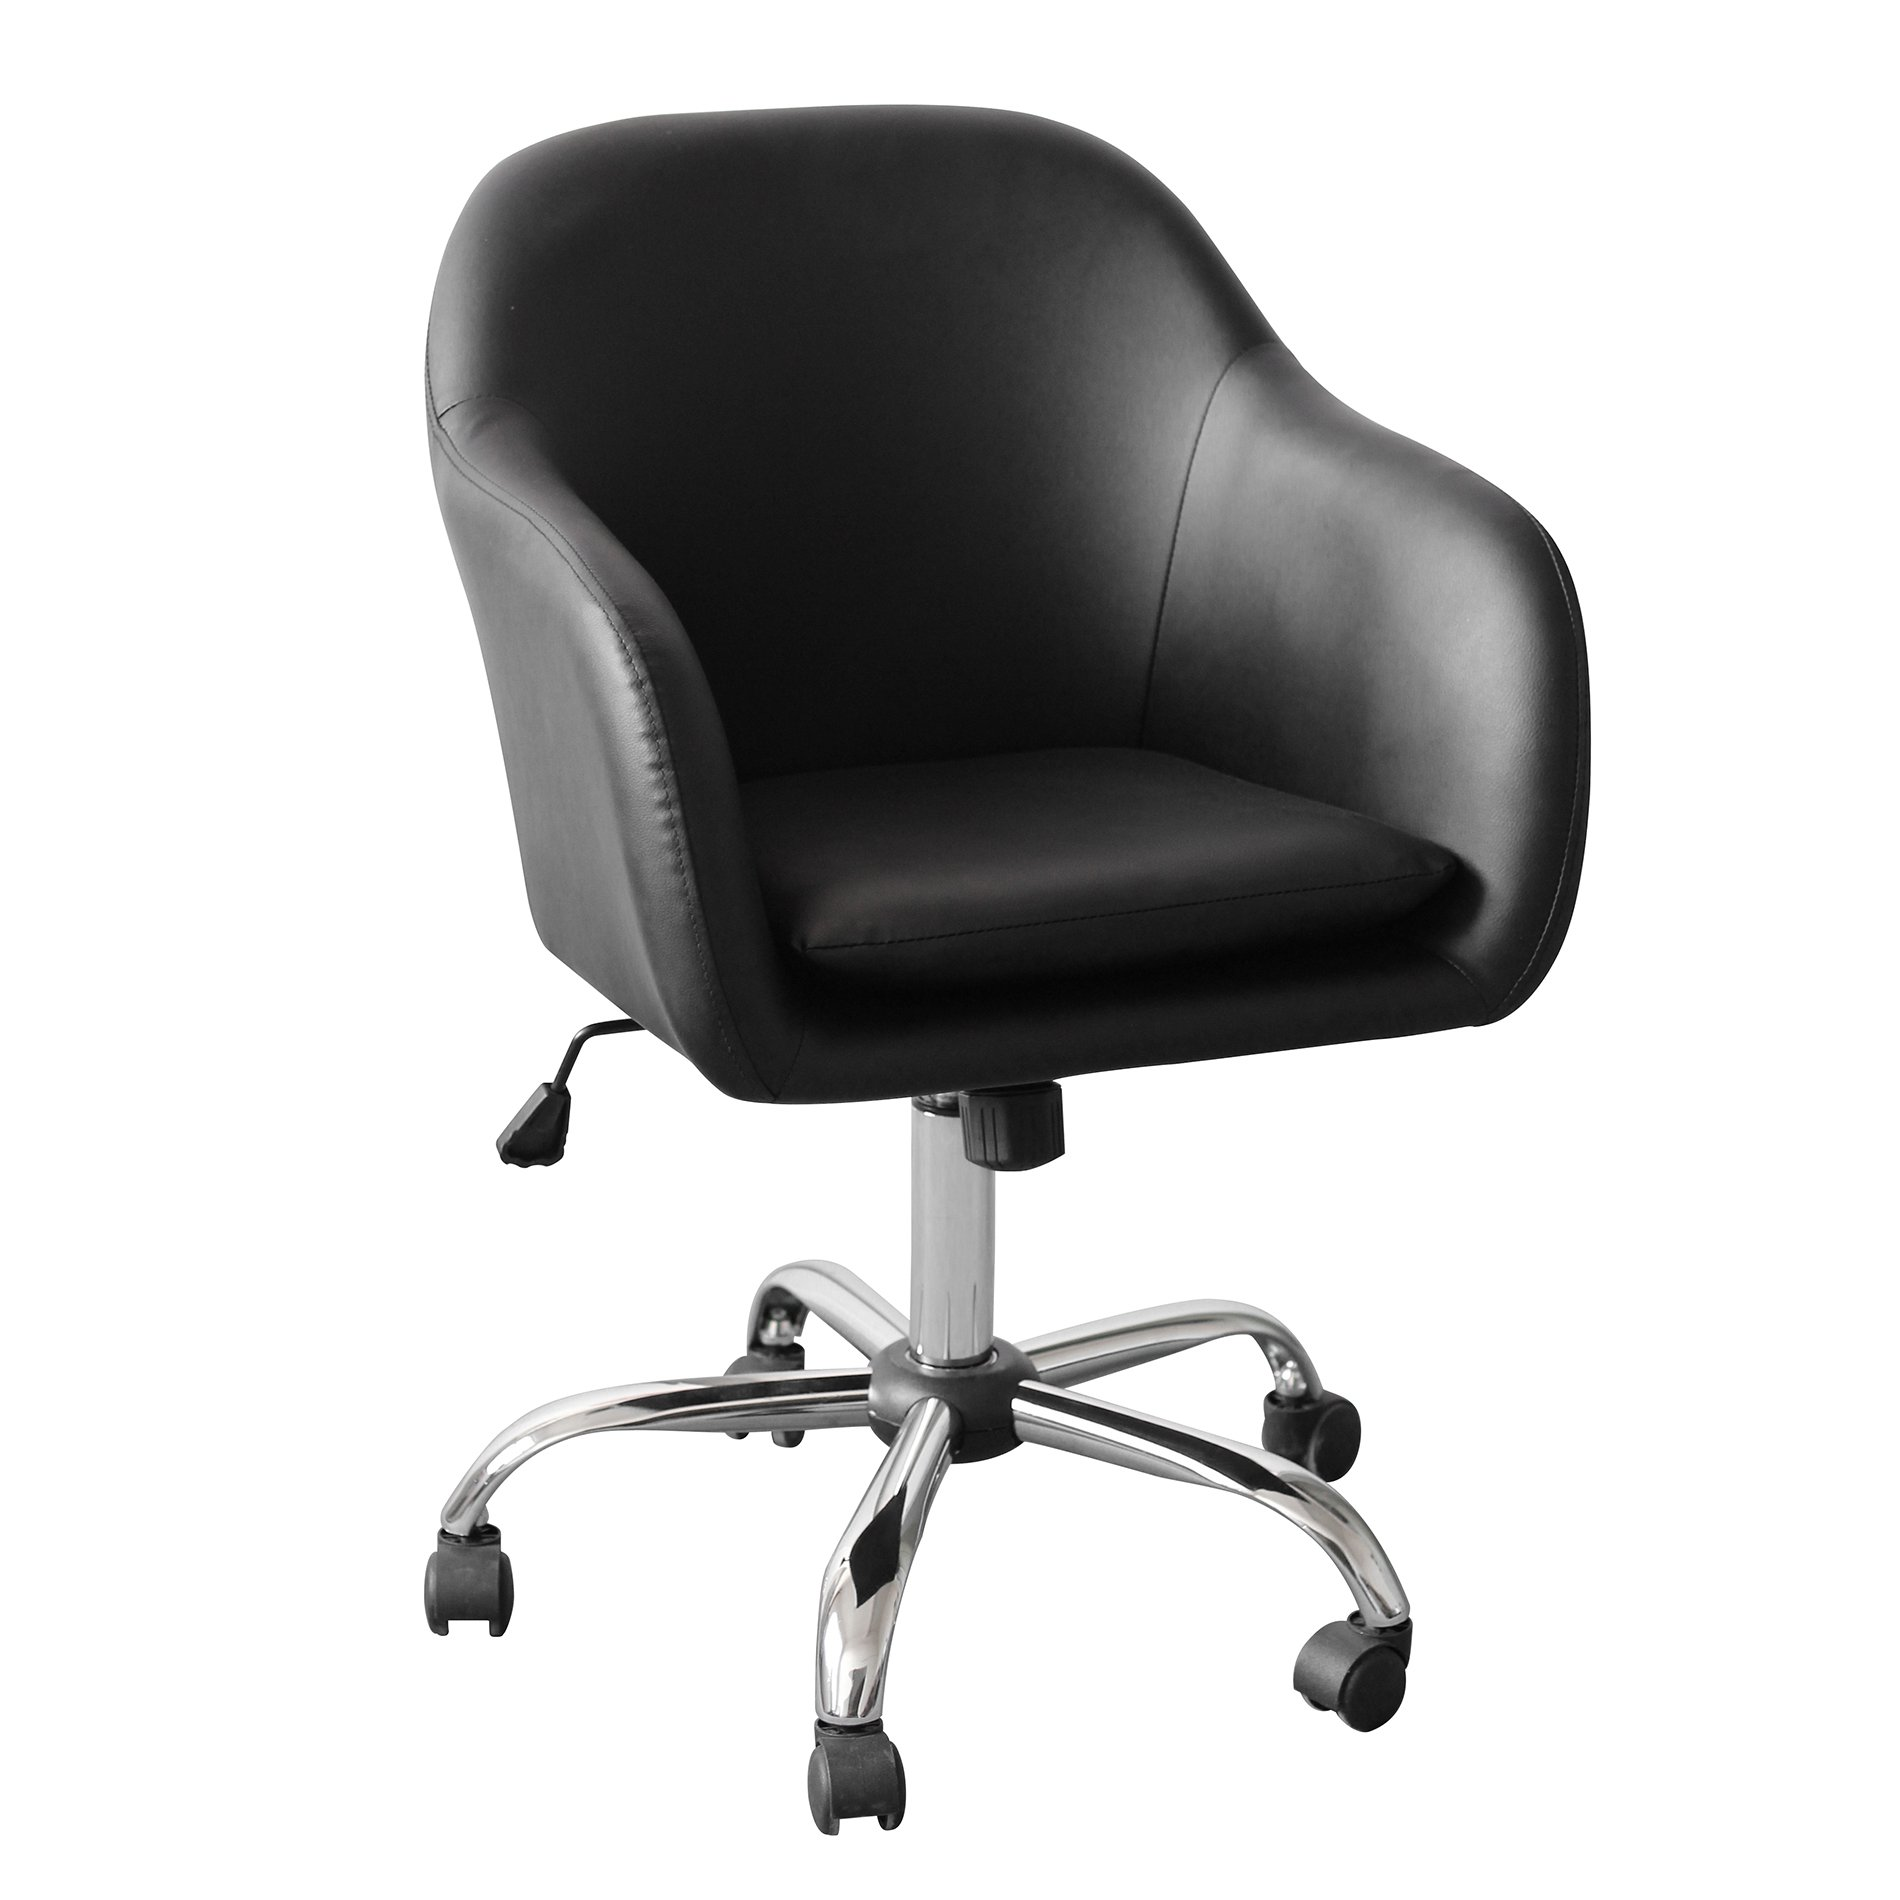 IDS Office Selection Home Office Desk Chair, Elegant Modern Design with Side Arms, Chrome Leg Waterproof Leather, Black